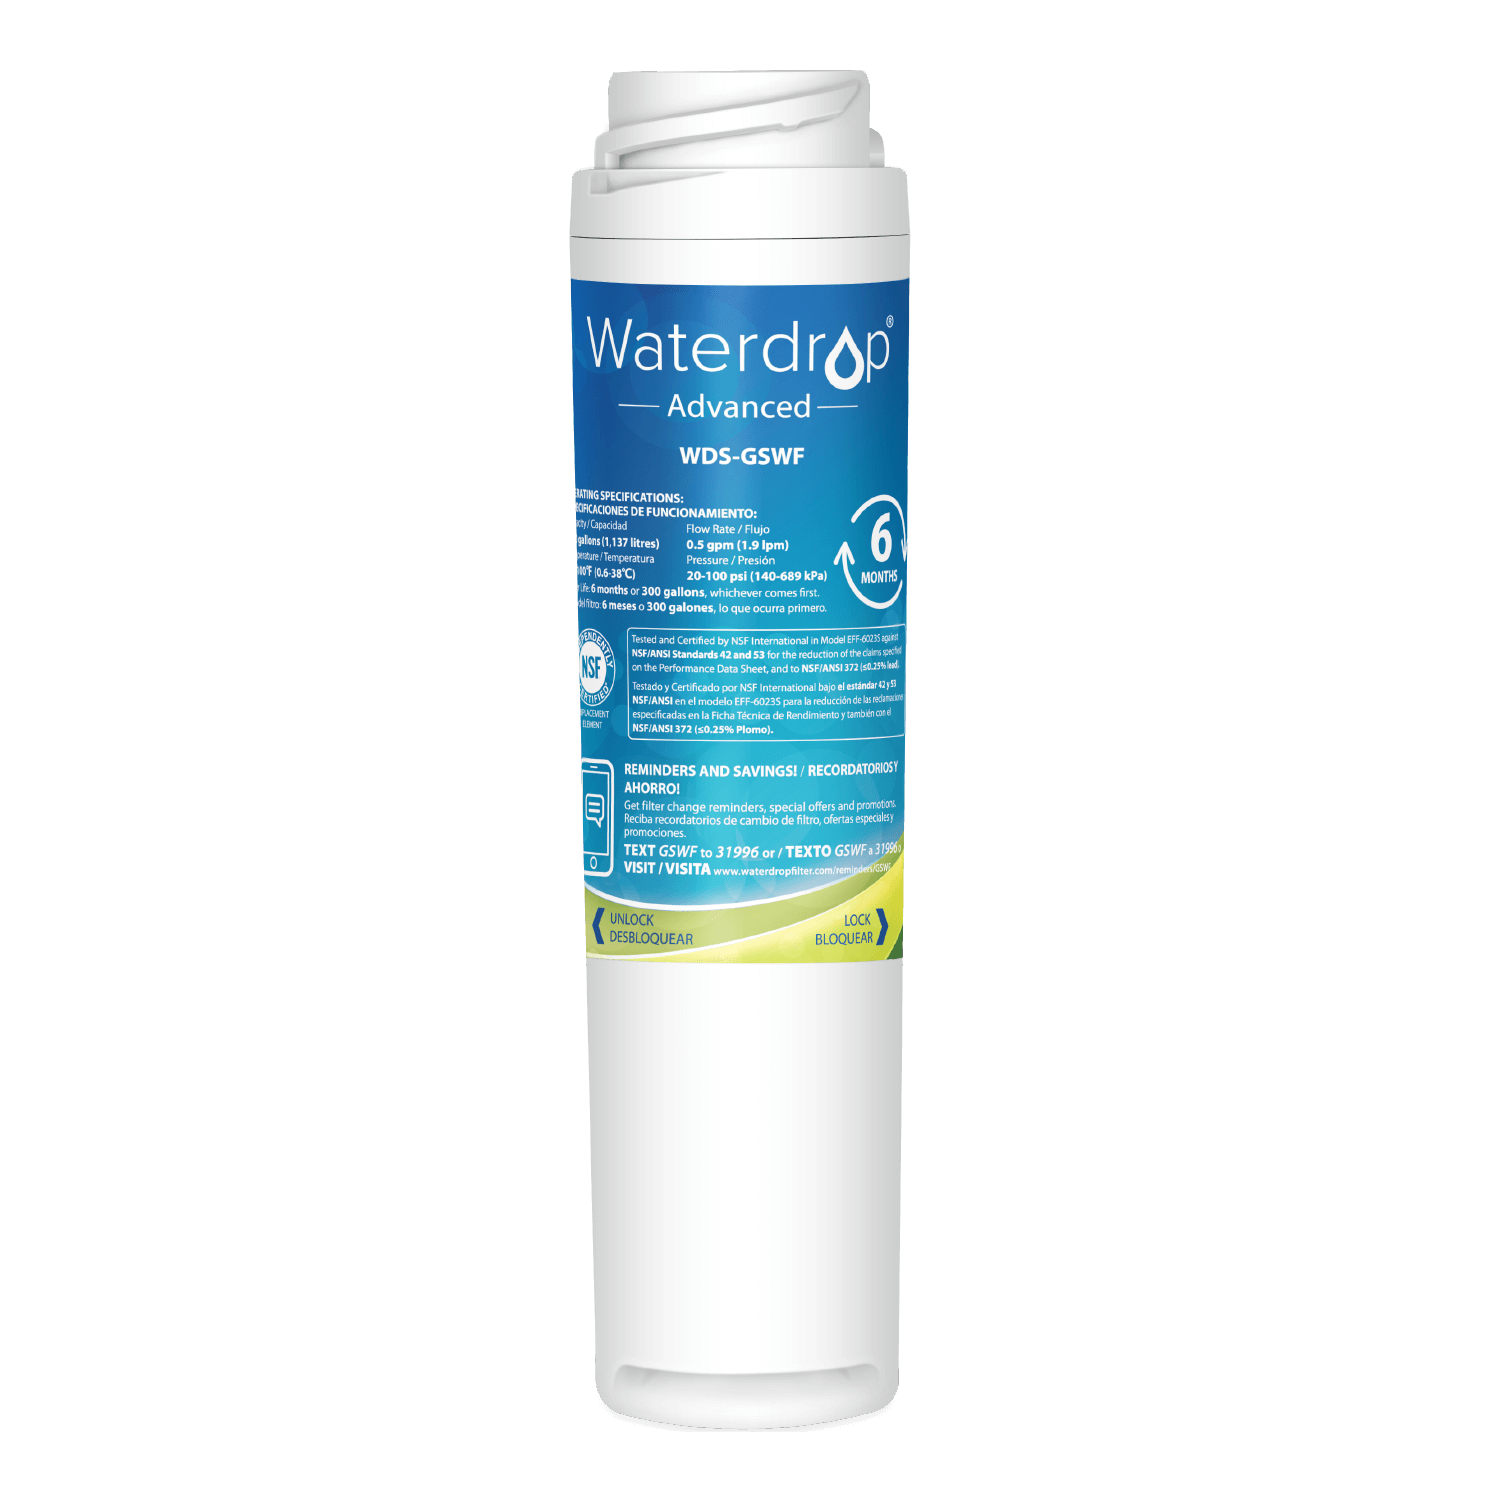 Waterdrop Replacement for GE PS1559689 Refrigerator Water Filter